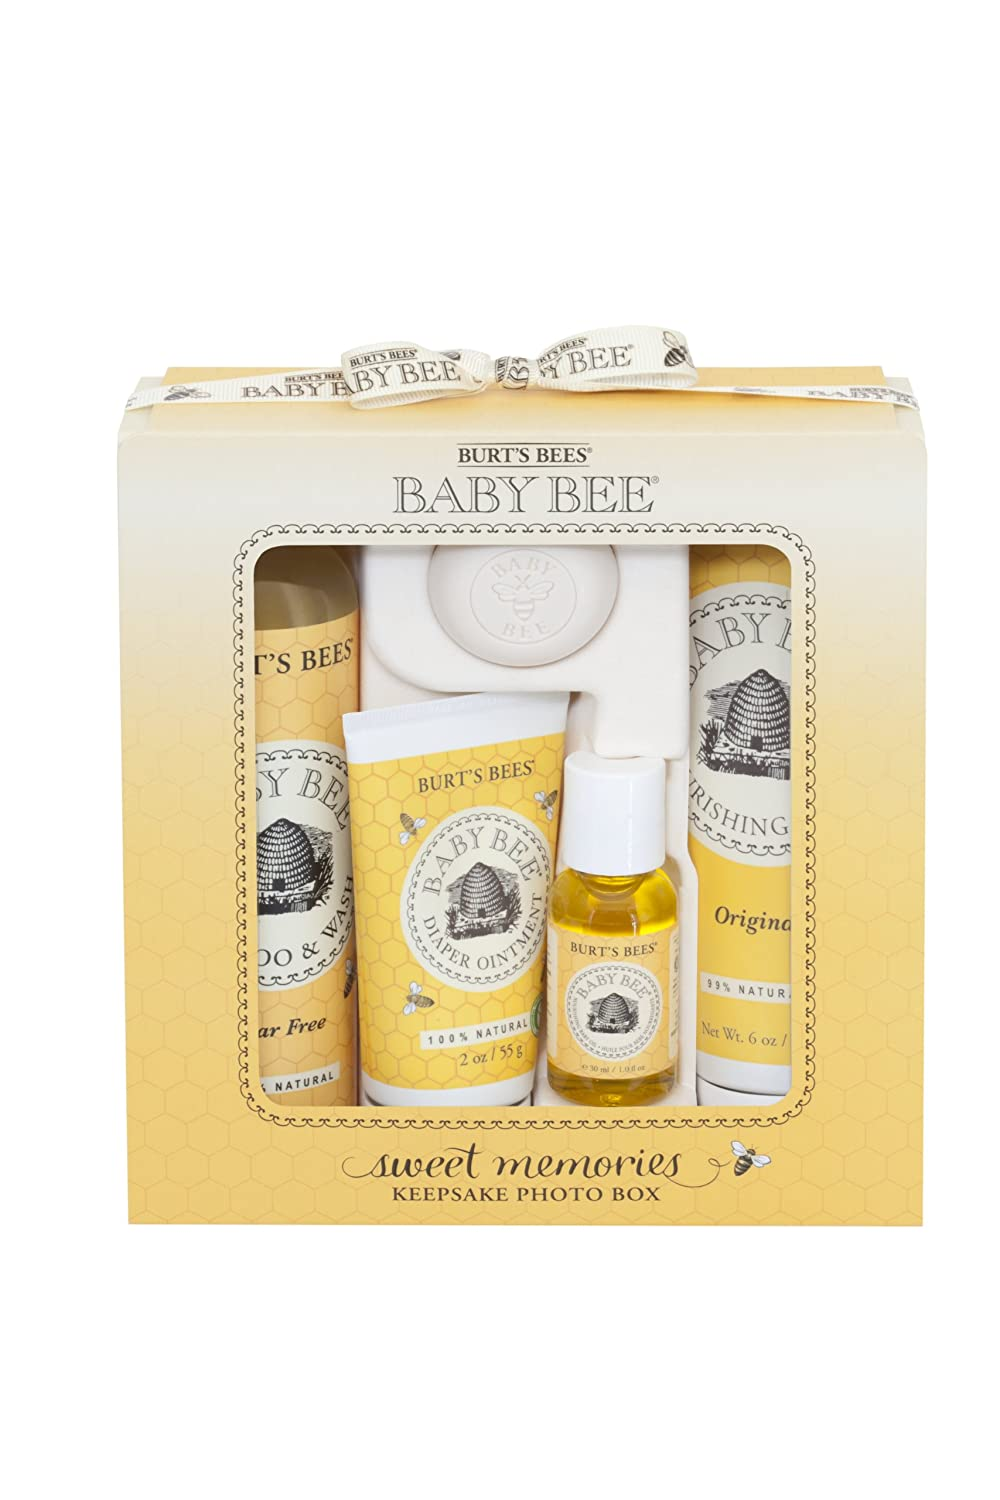 Burt's Bees Baby Sweet Memories Gift Set with Keepsake Photo Box, 4 Baby Products – Shampoo & Wash, Lotion, Diaper Rash Ointment and Soap Burt's Bees 01768-24